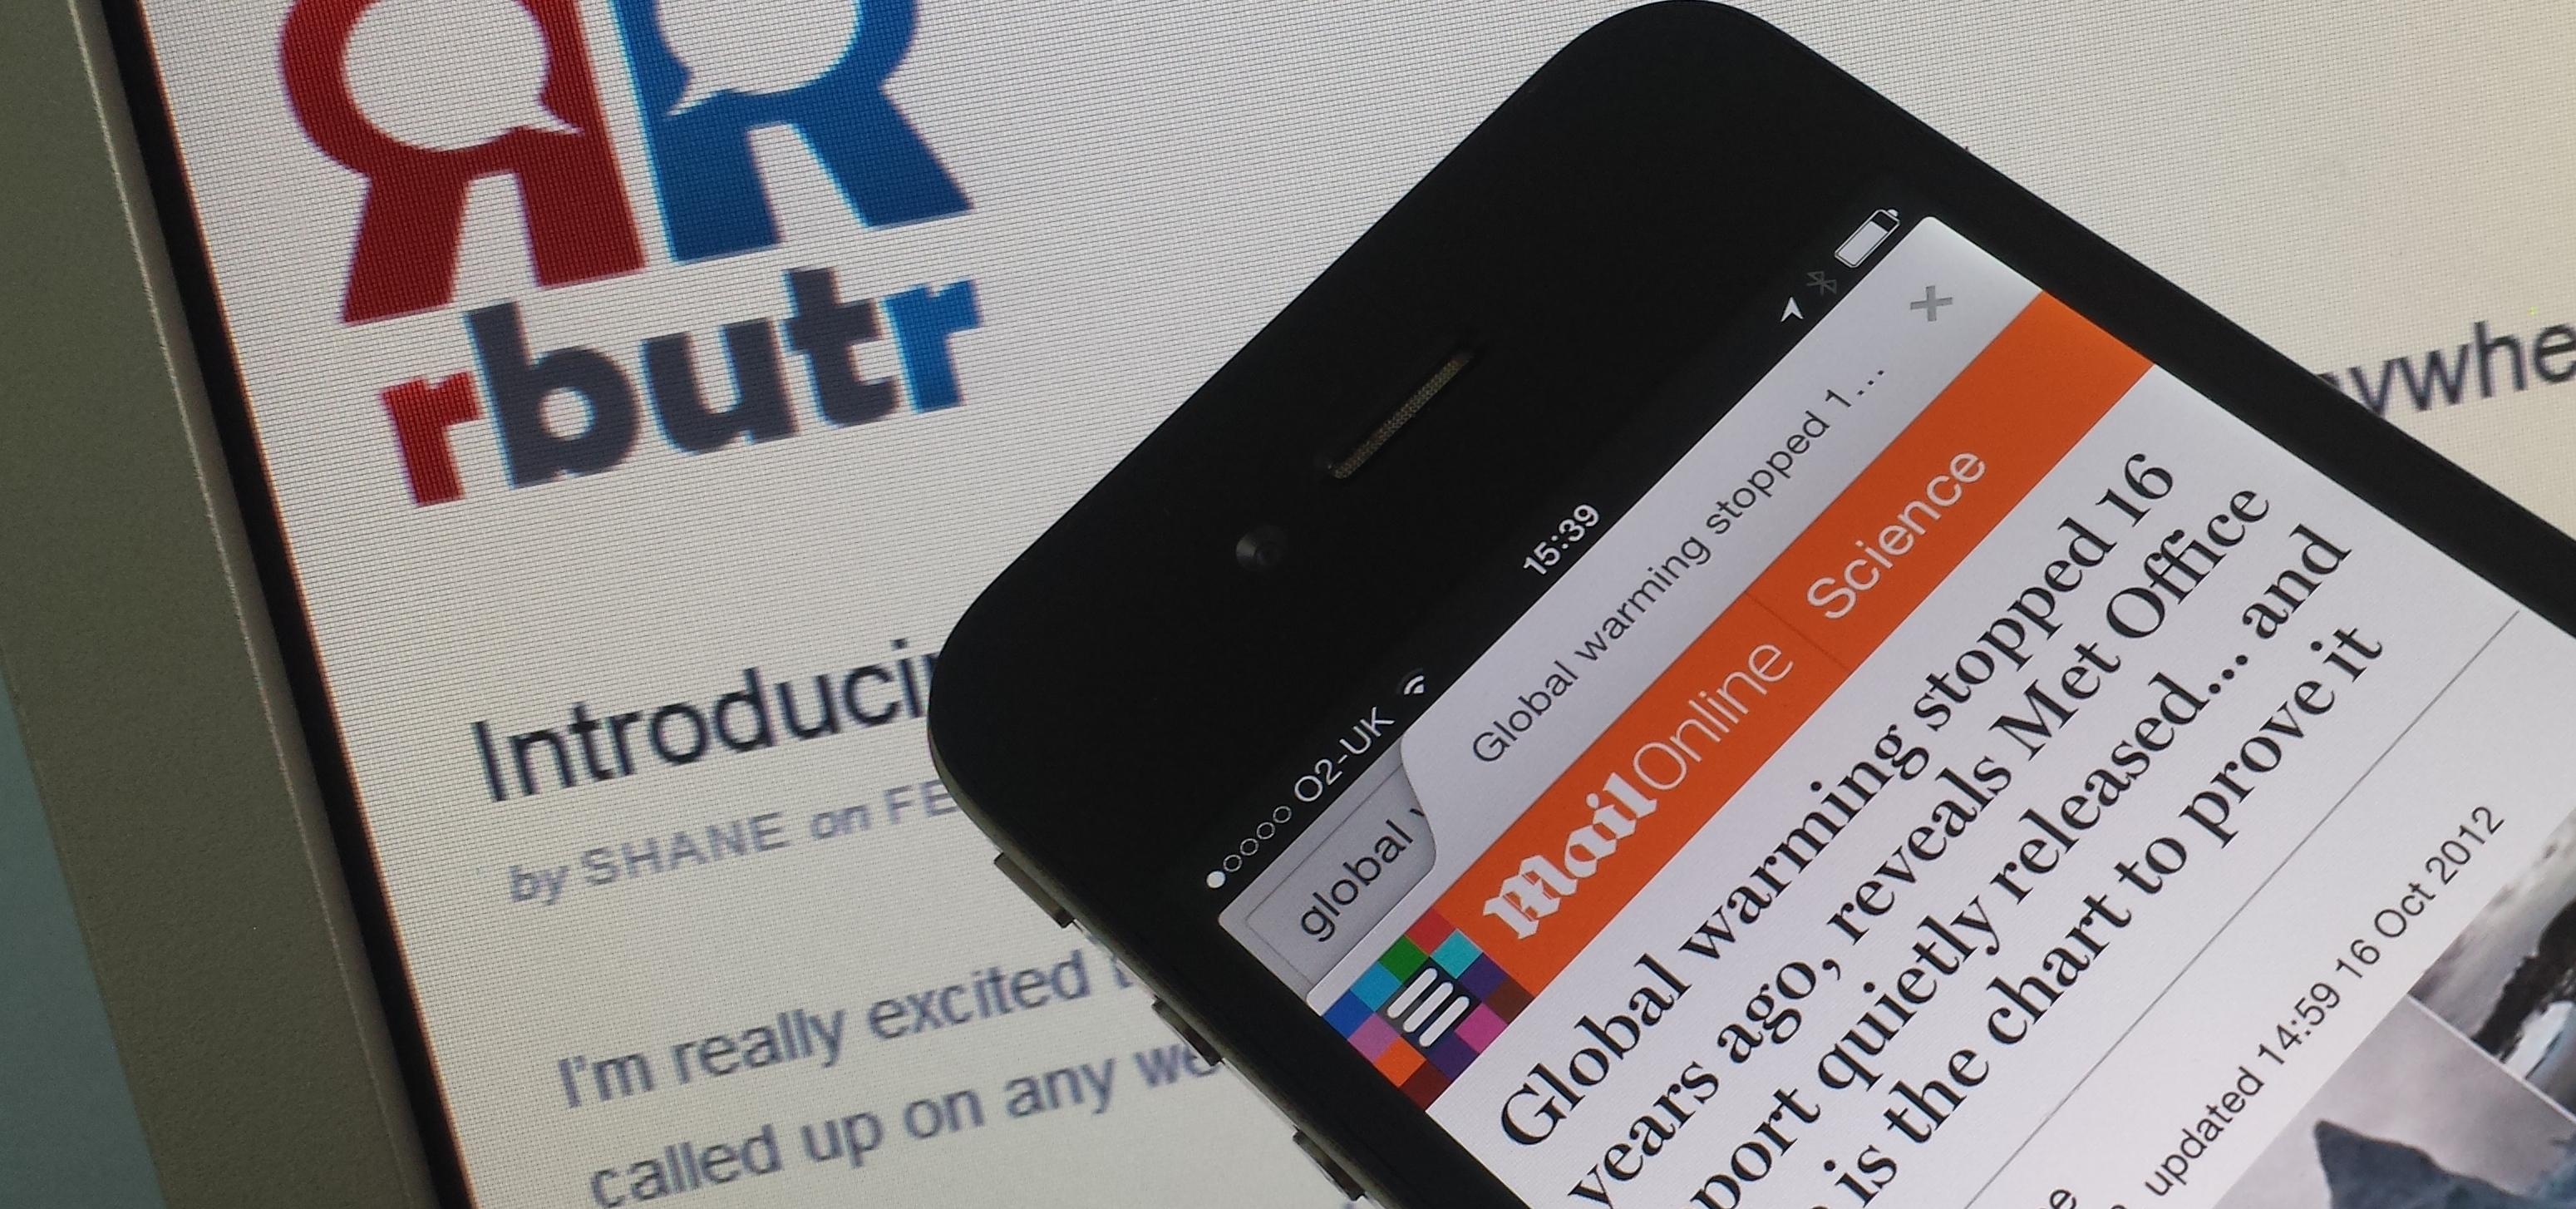 Rbutr Makes it Easier to Flag Online Misinformation